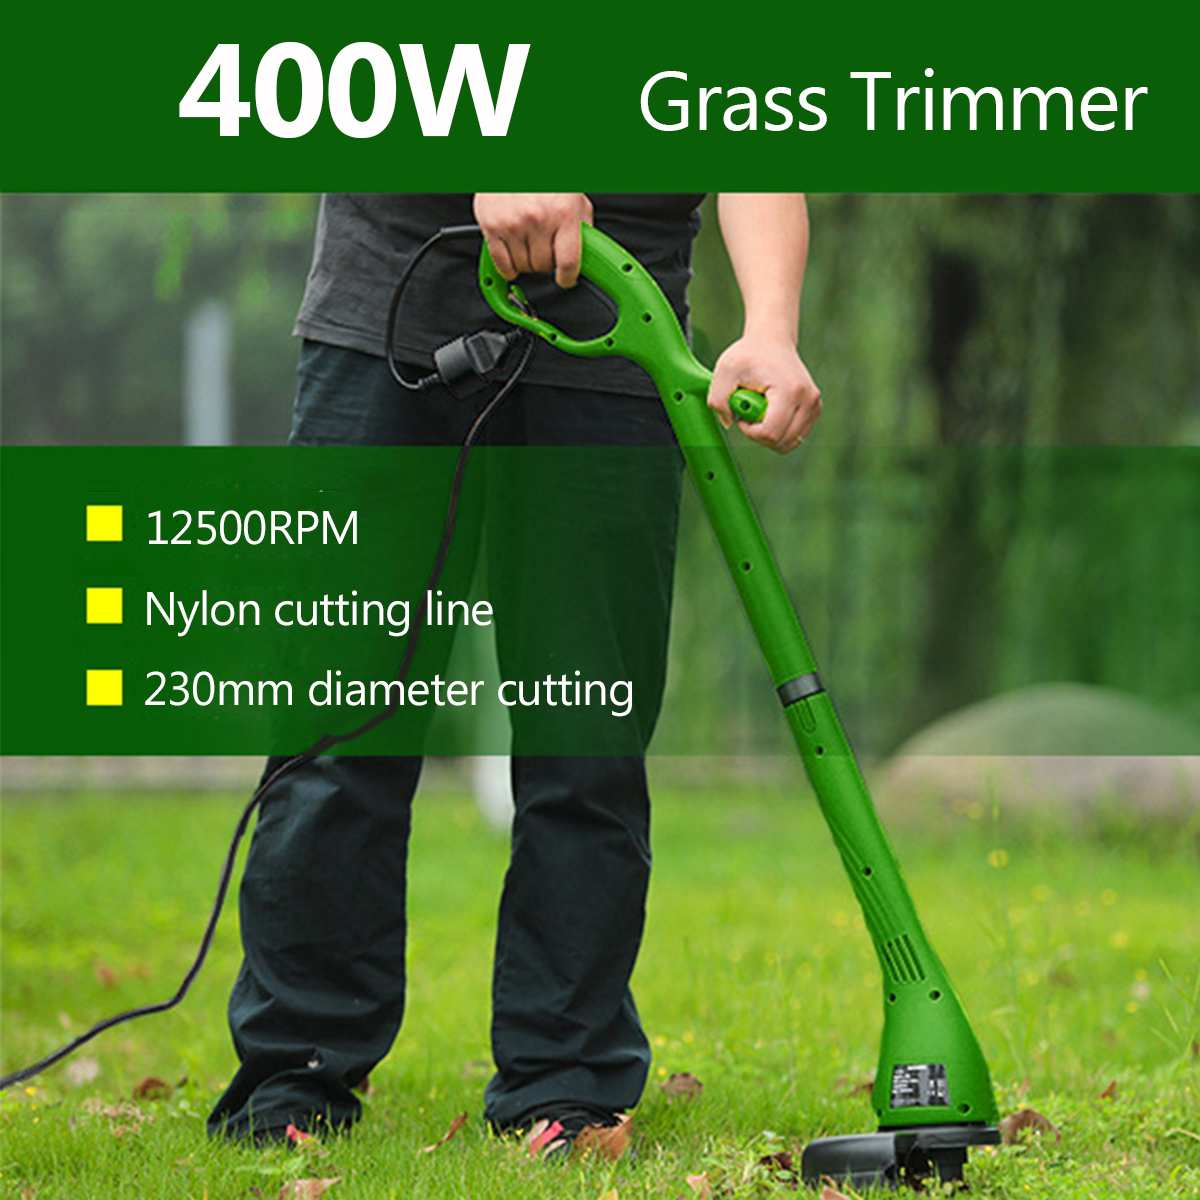 230mm 12500RPM Electric Lawn Mower Grass Trimmer Lawnmower Cutter Machine Heavy Duty Pruning Machine Garden Power Tools